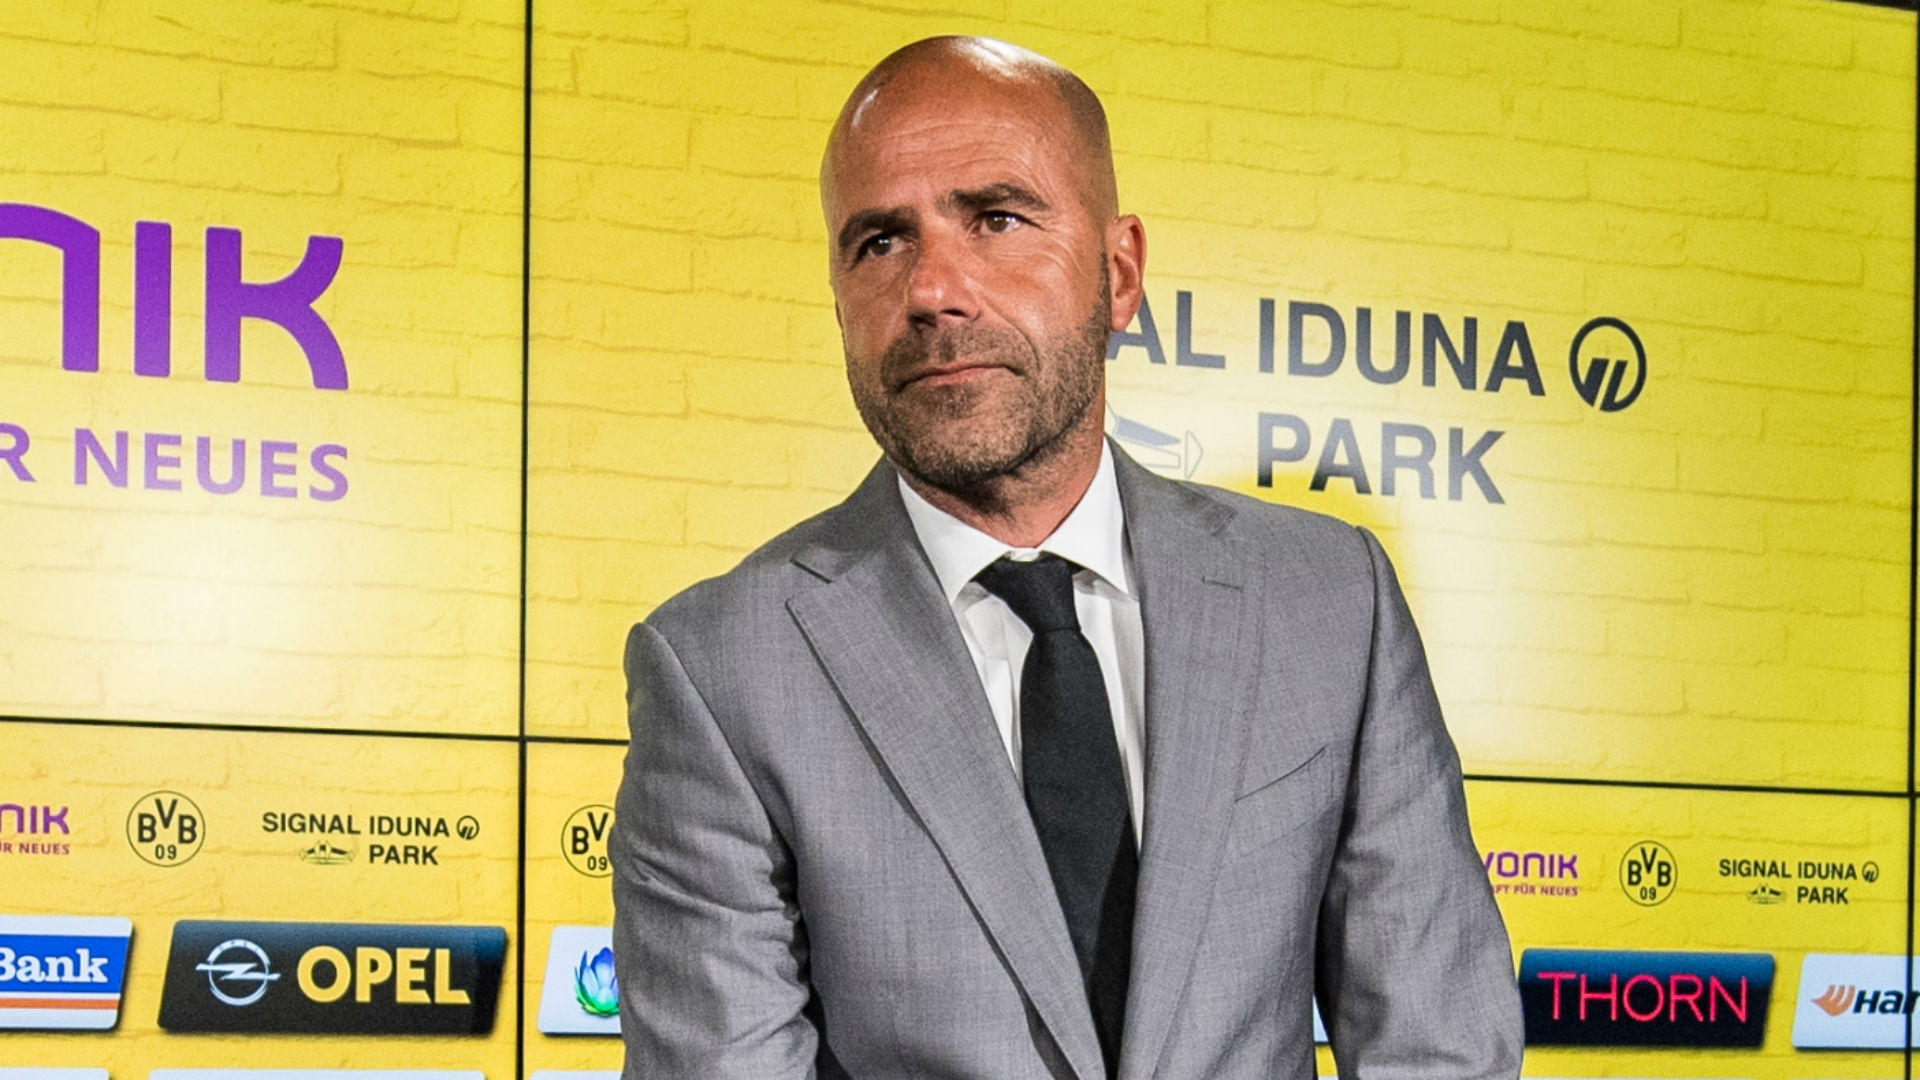 Dortmund took on fourth league side Rot-Weiss Essen in a friendly game meant to introduce Bosz to the fans and to allow the manager to watch his new team in action.